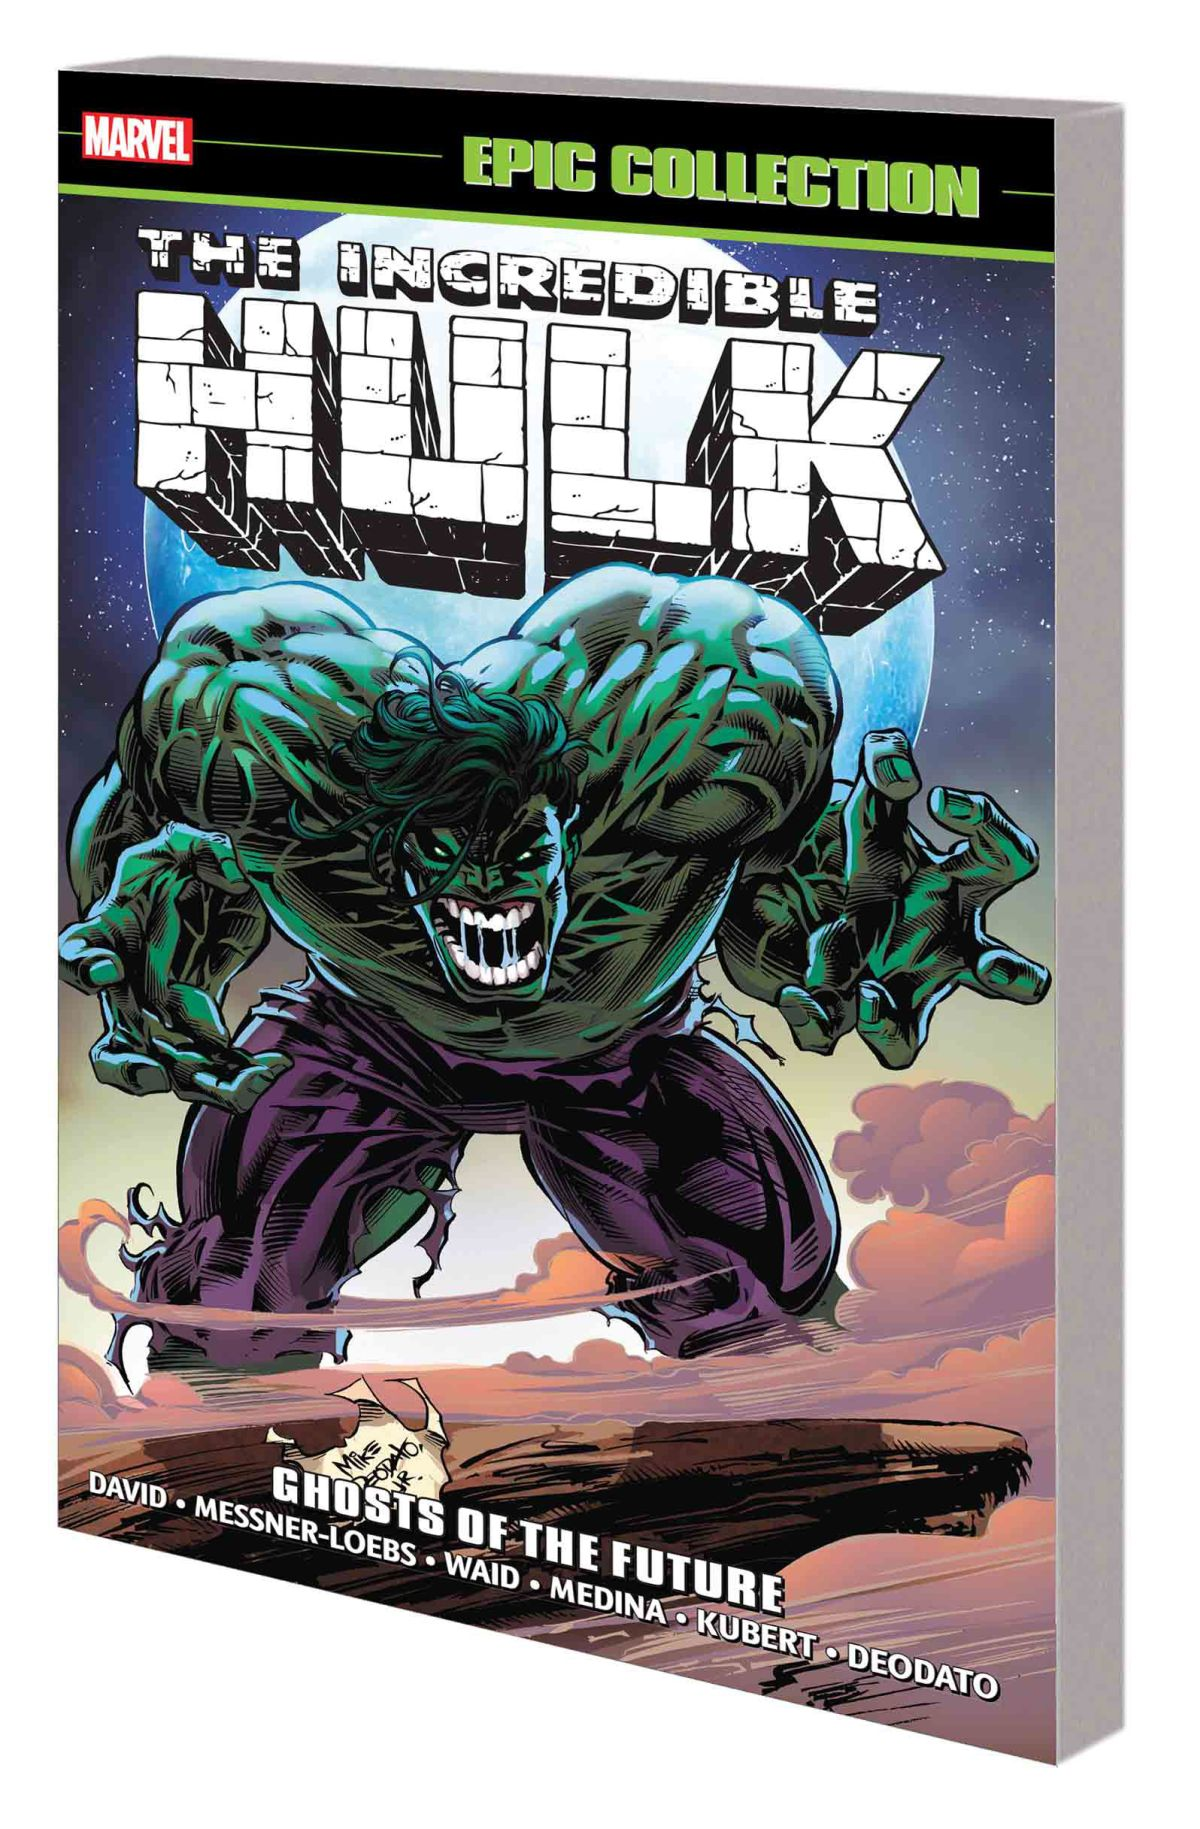 INCREDIBLE HULK EPIC COLLECTION: GHOSTS OF THE FUTURE TPB